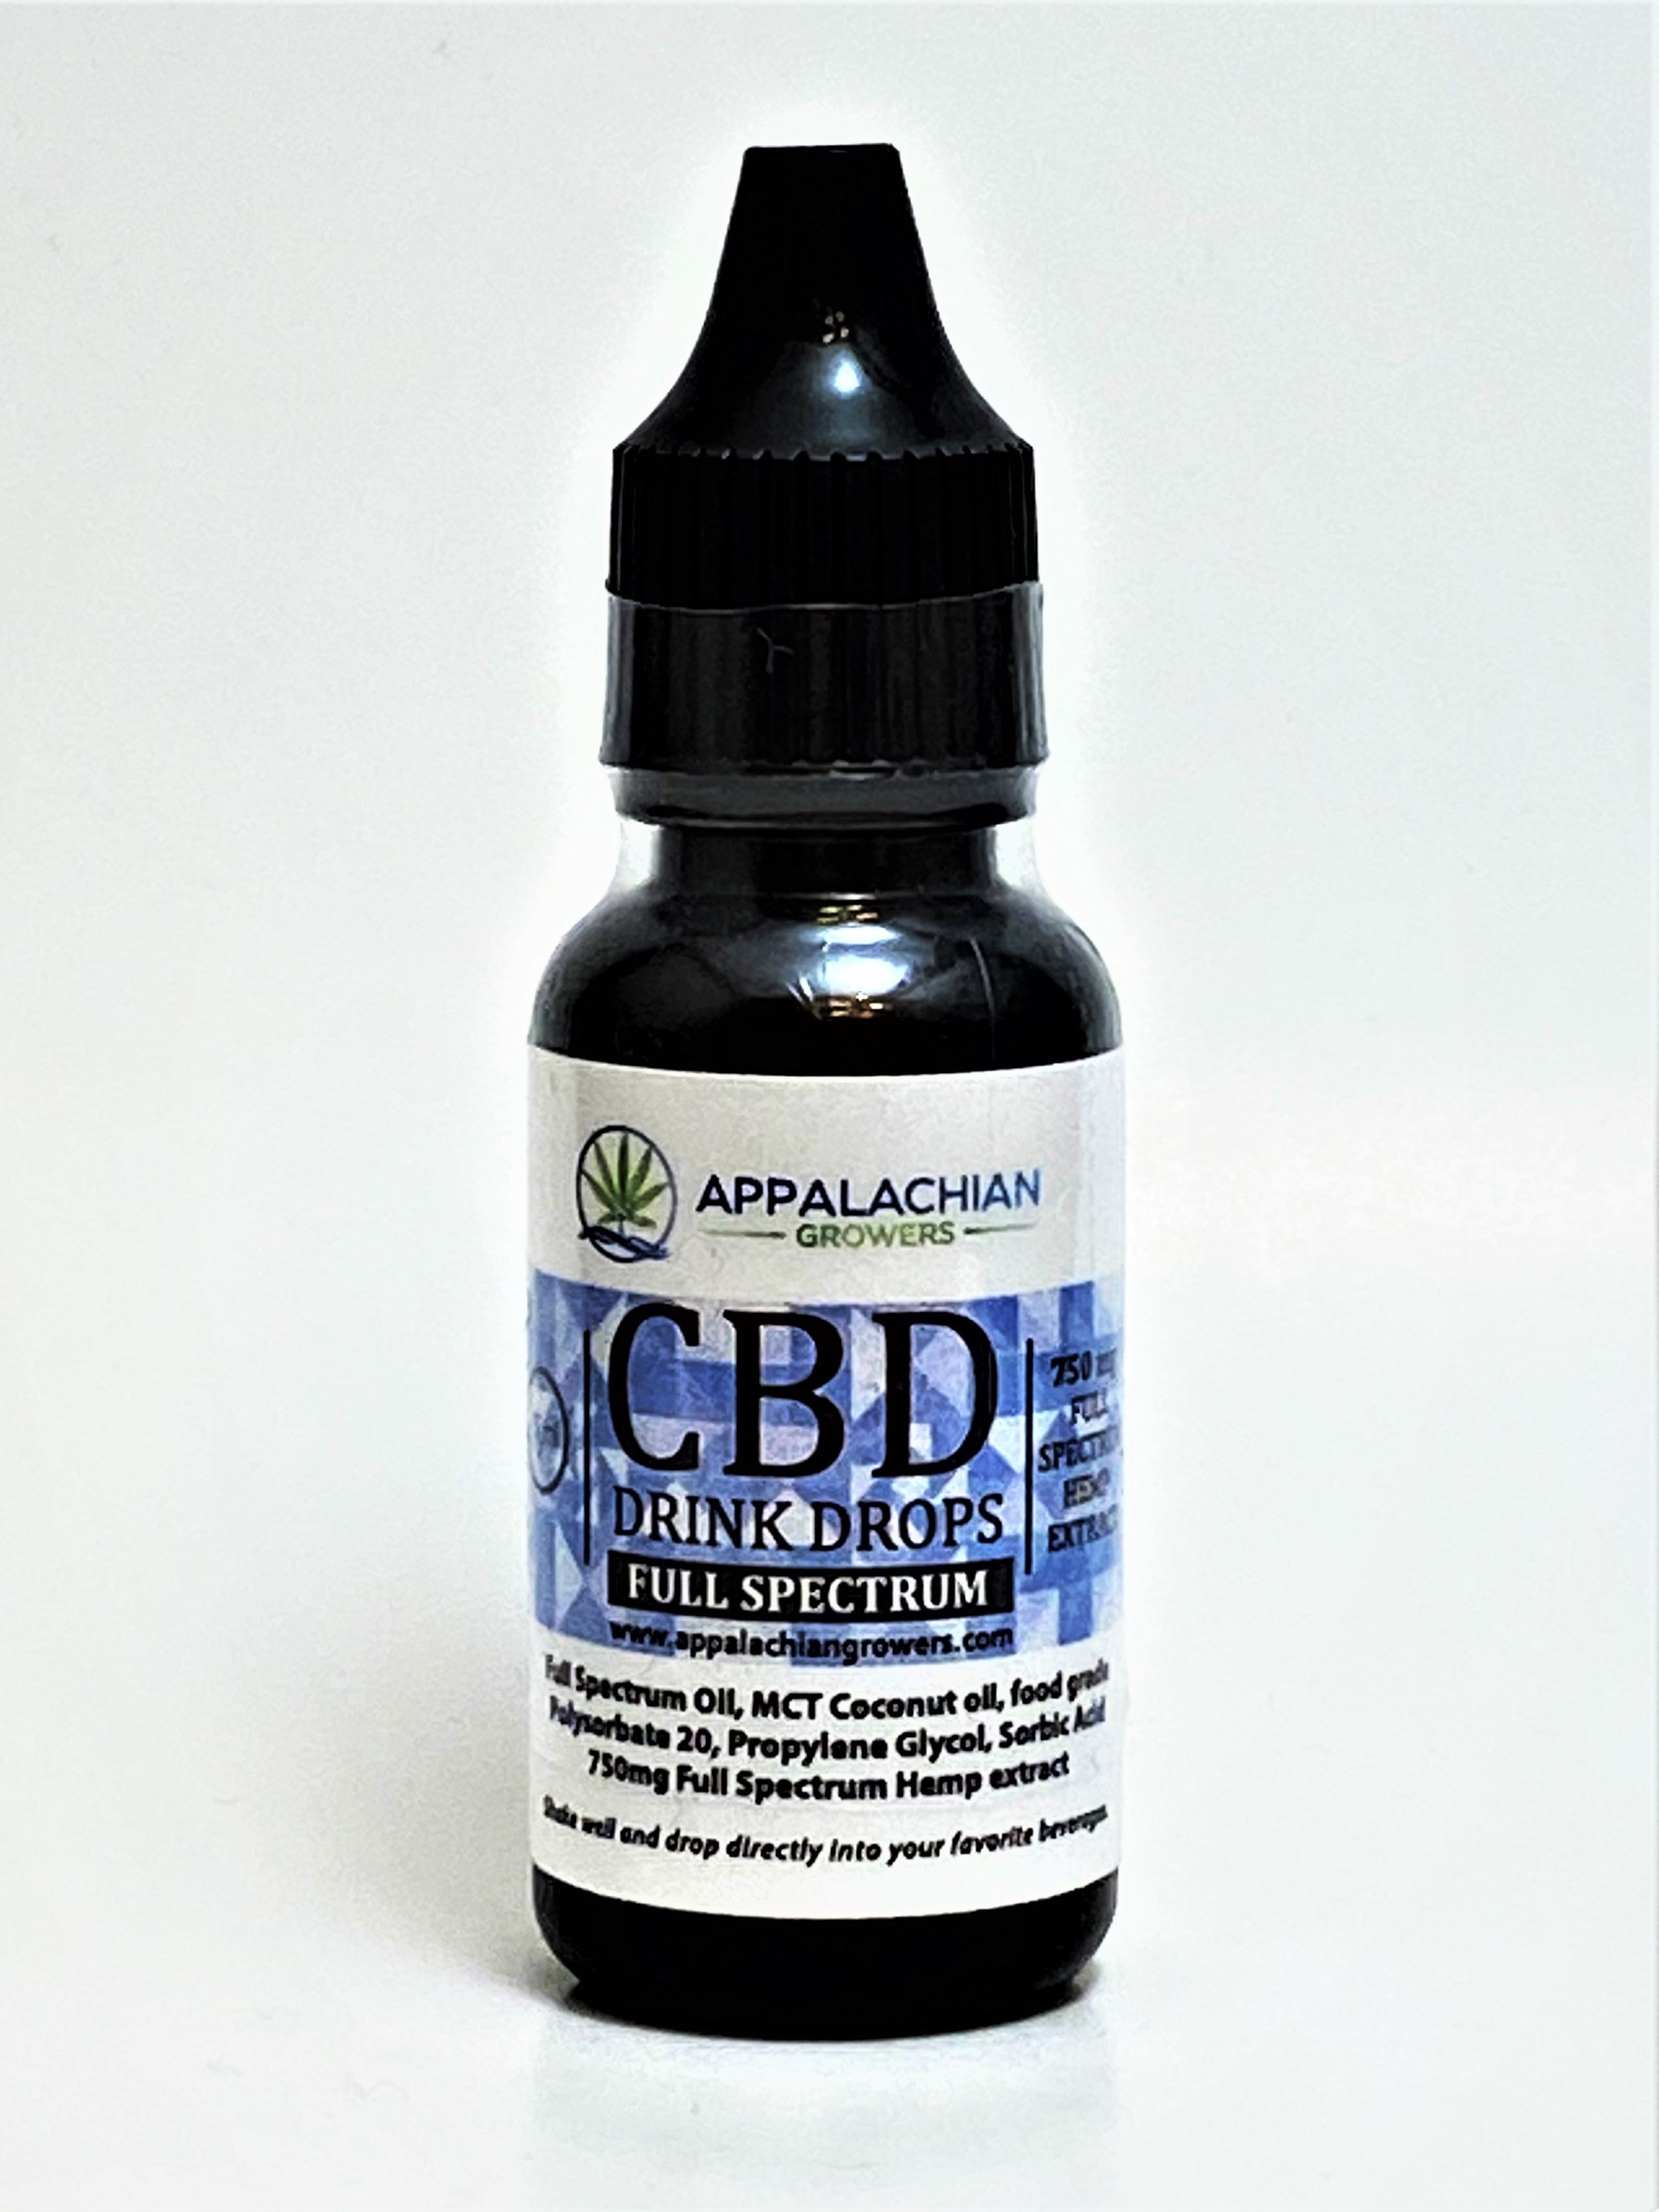 Appalachian Growers Water Soluble Drink Drops 750 mg Full Spectrum